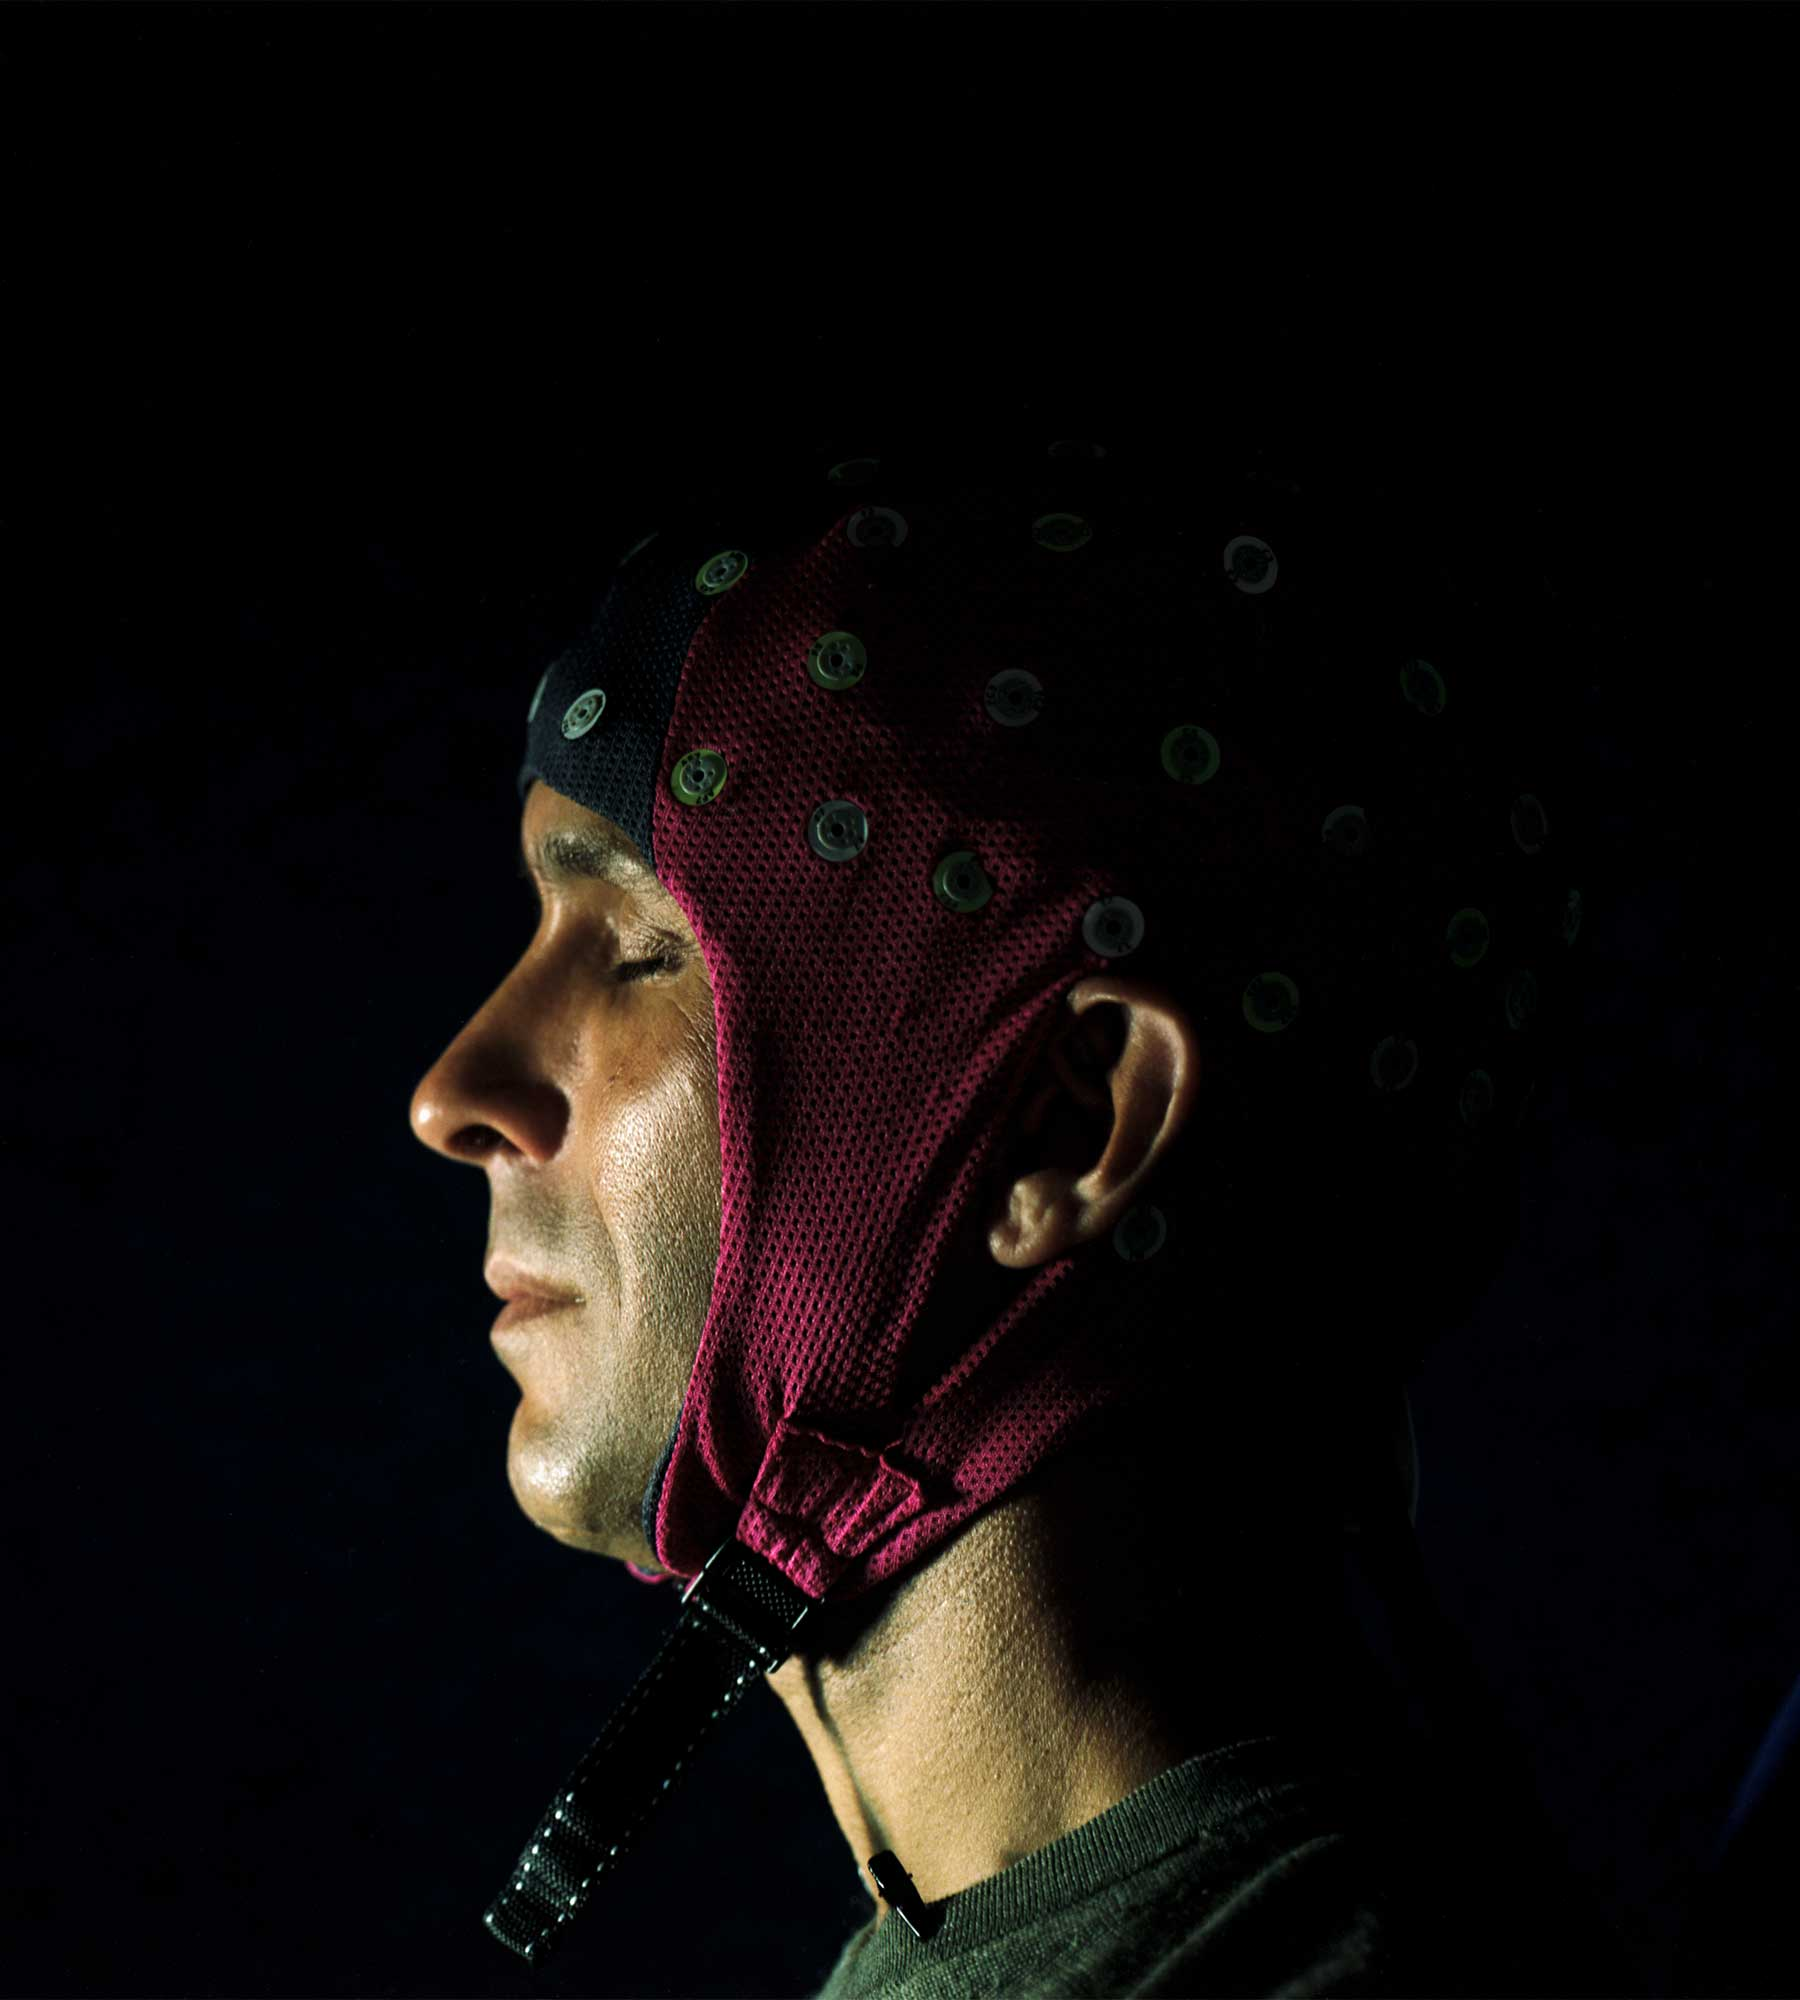 Seth wears a cap covered with sensors for monitoring the brain.